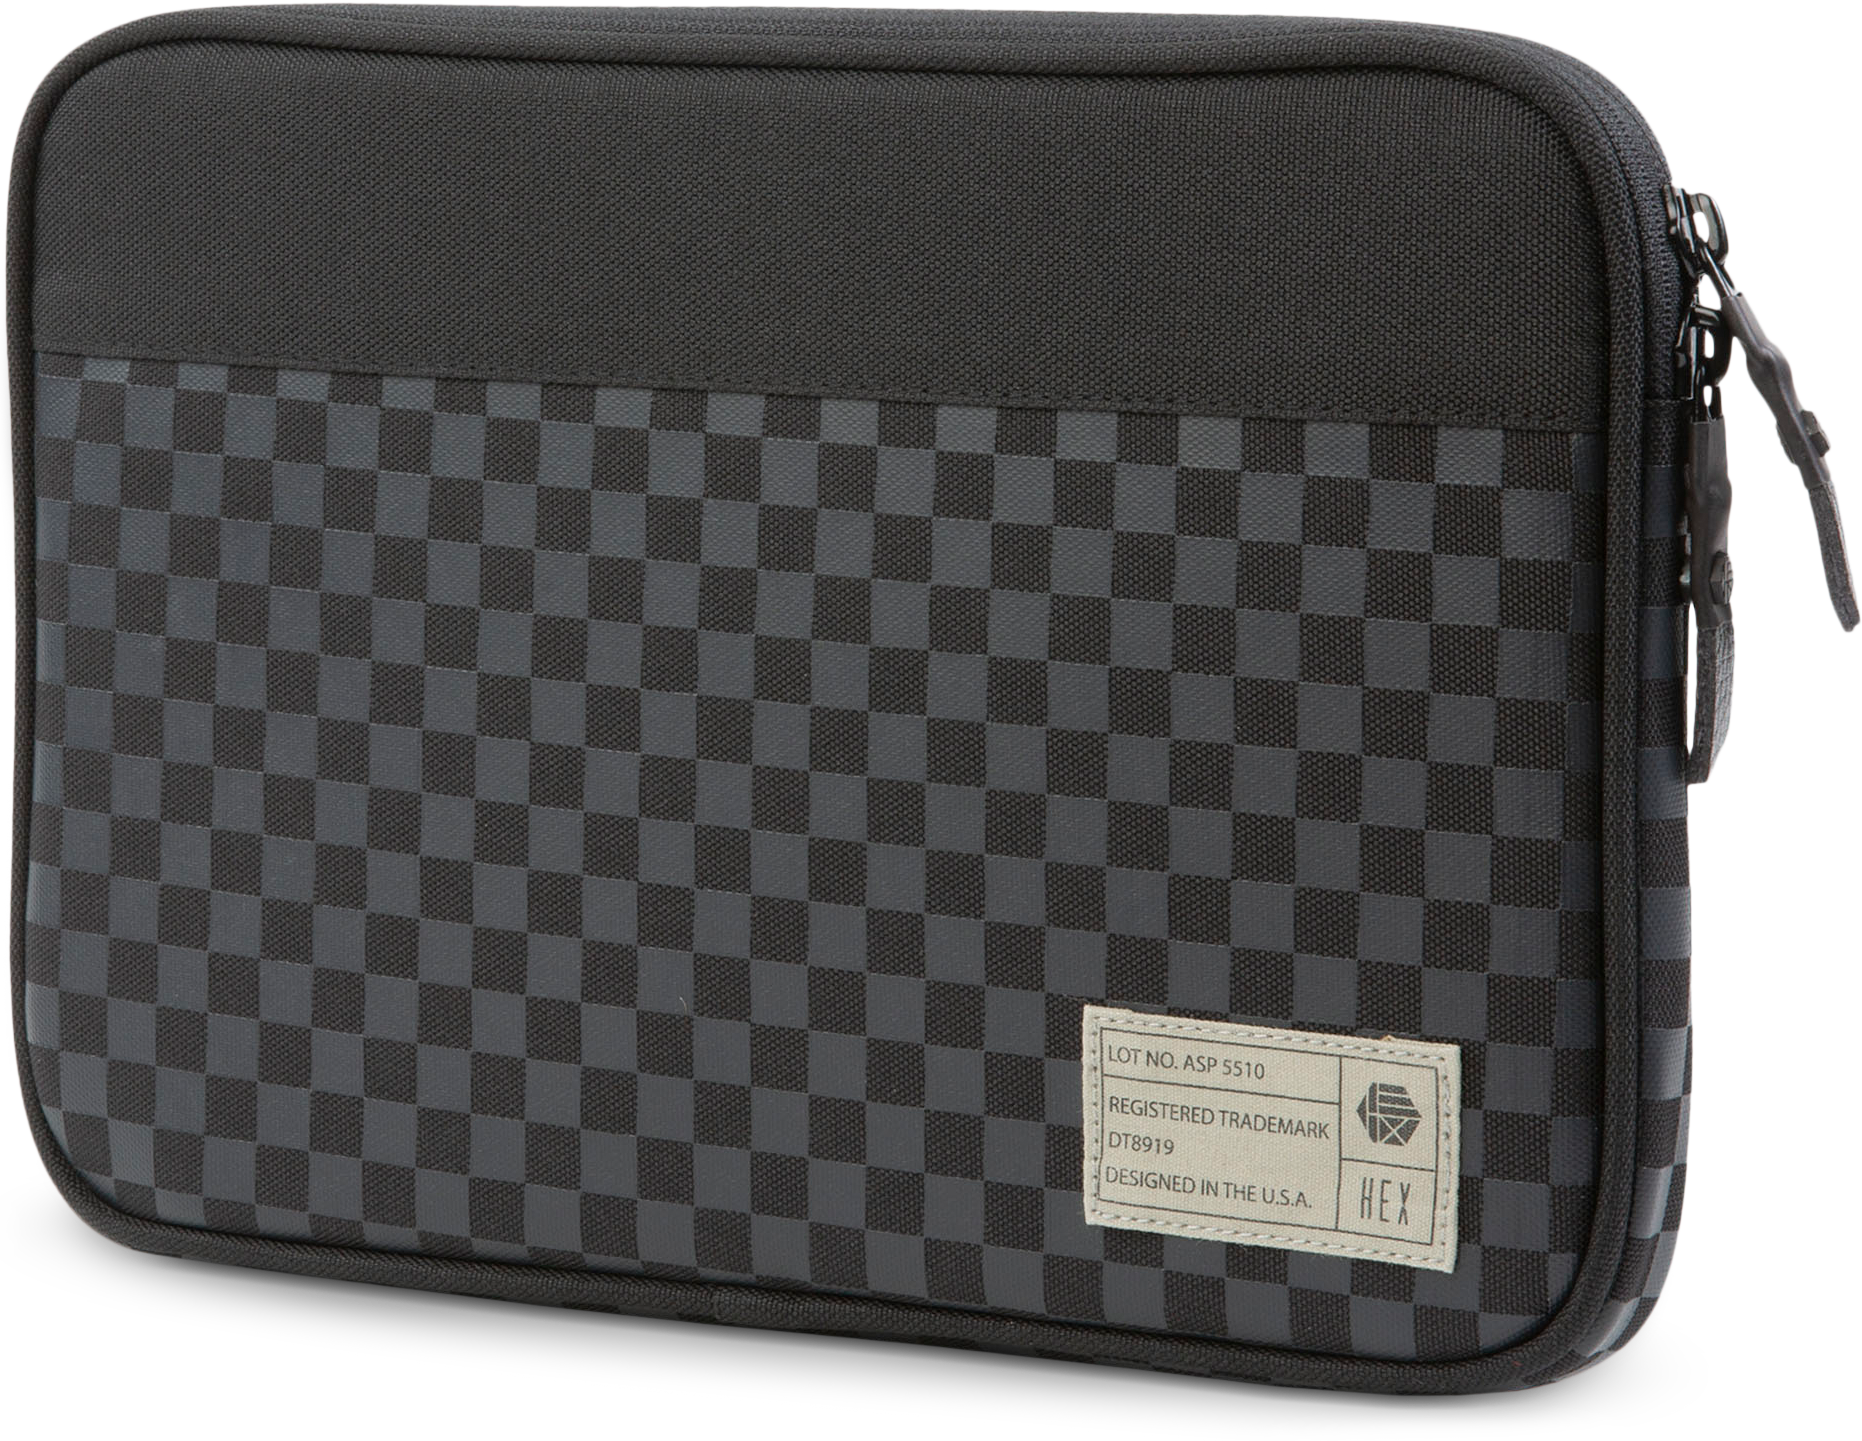 RE2nhsp?ver=da93 - HEX Surface Go Sleeve in Black Checker (Nylon)